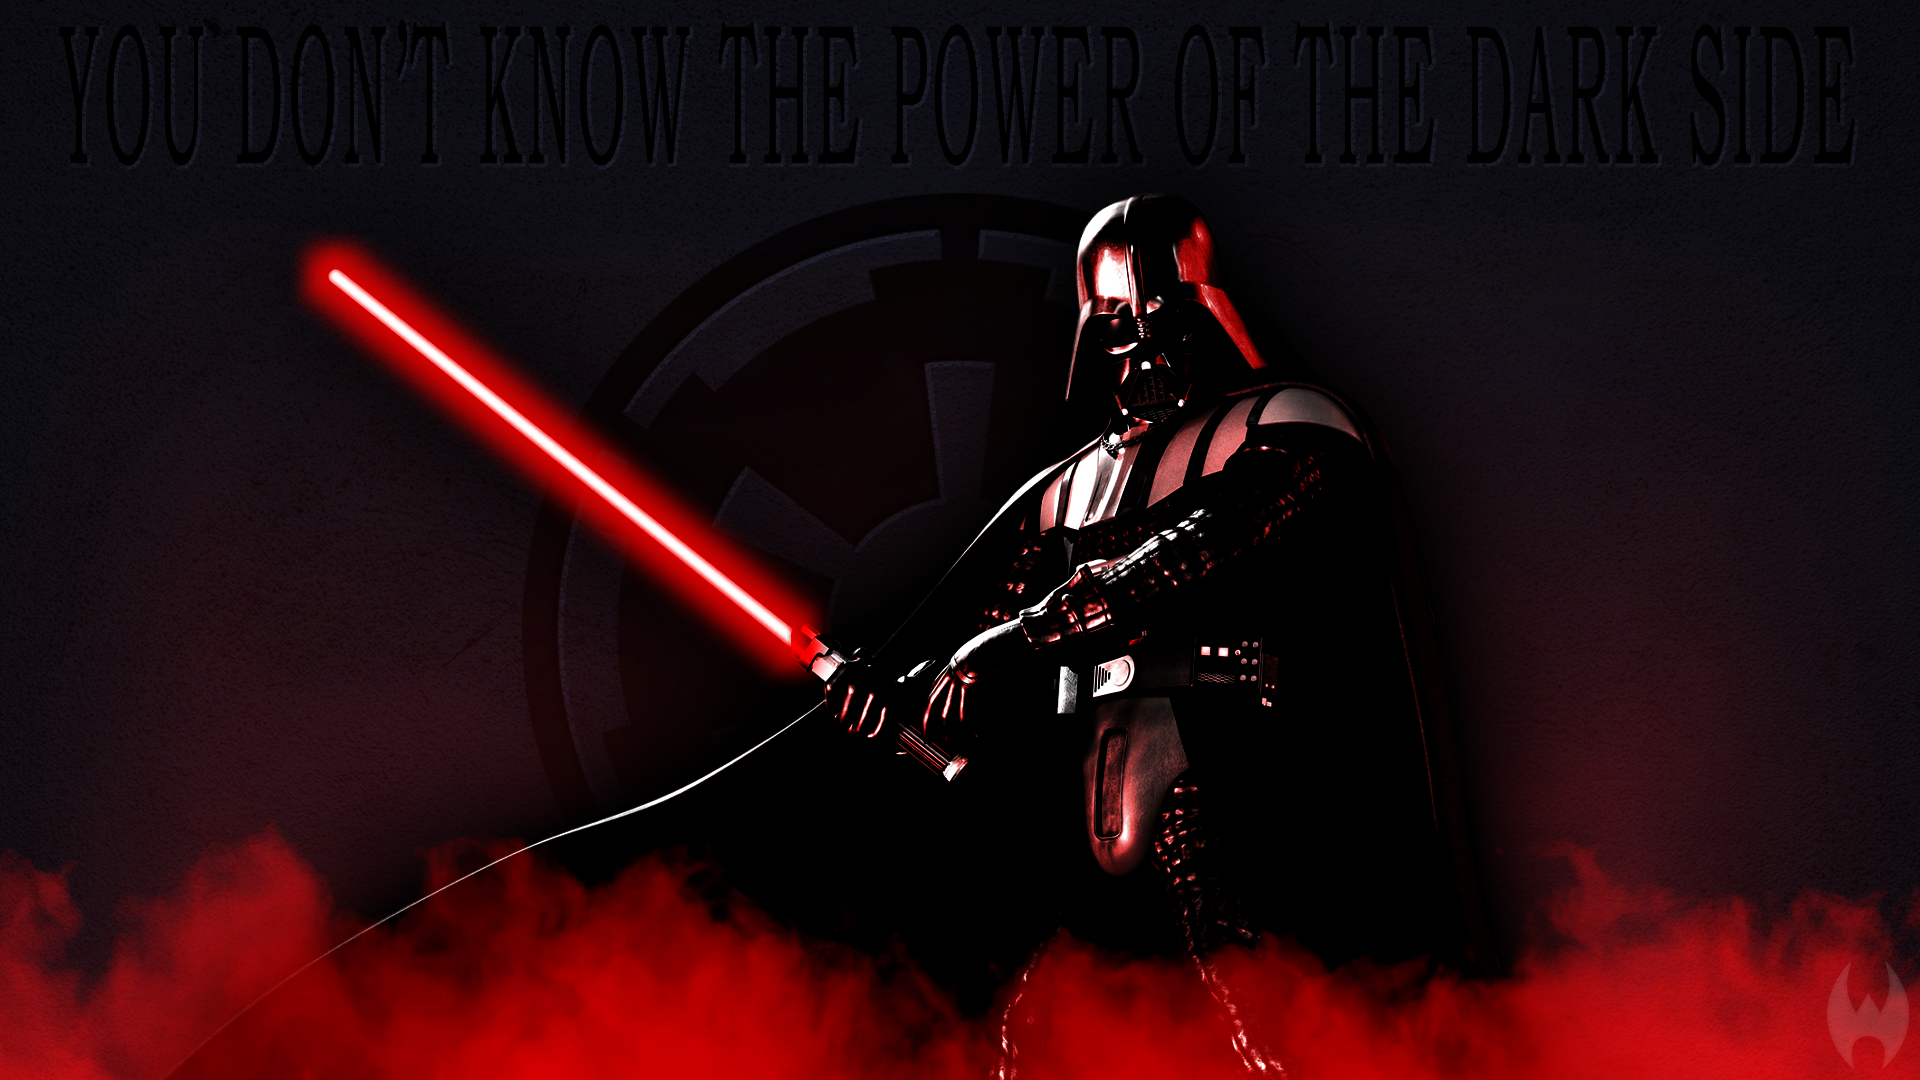 Darth Vader Star Wars Sith Lord 2861463 Hd Wallpaper Backgrounds Download